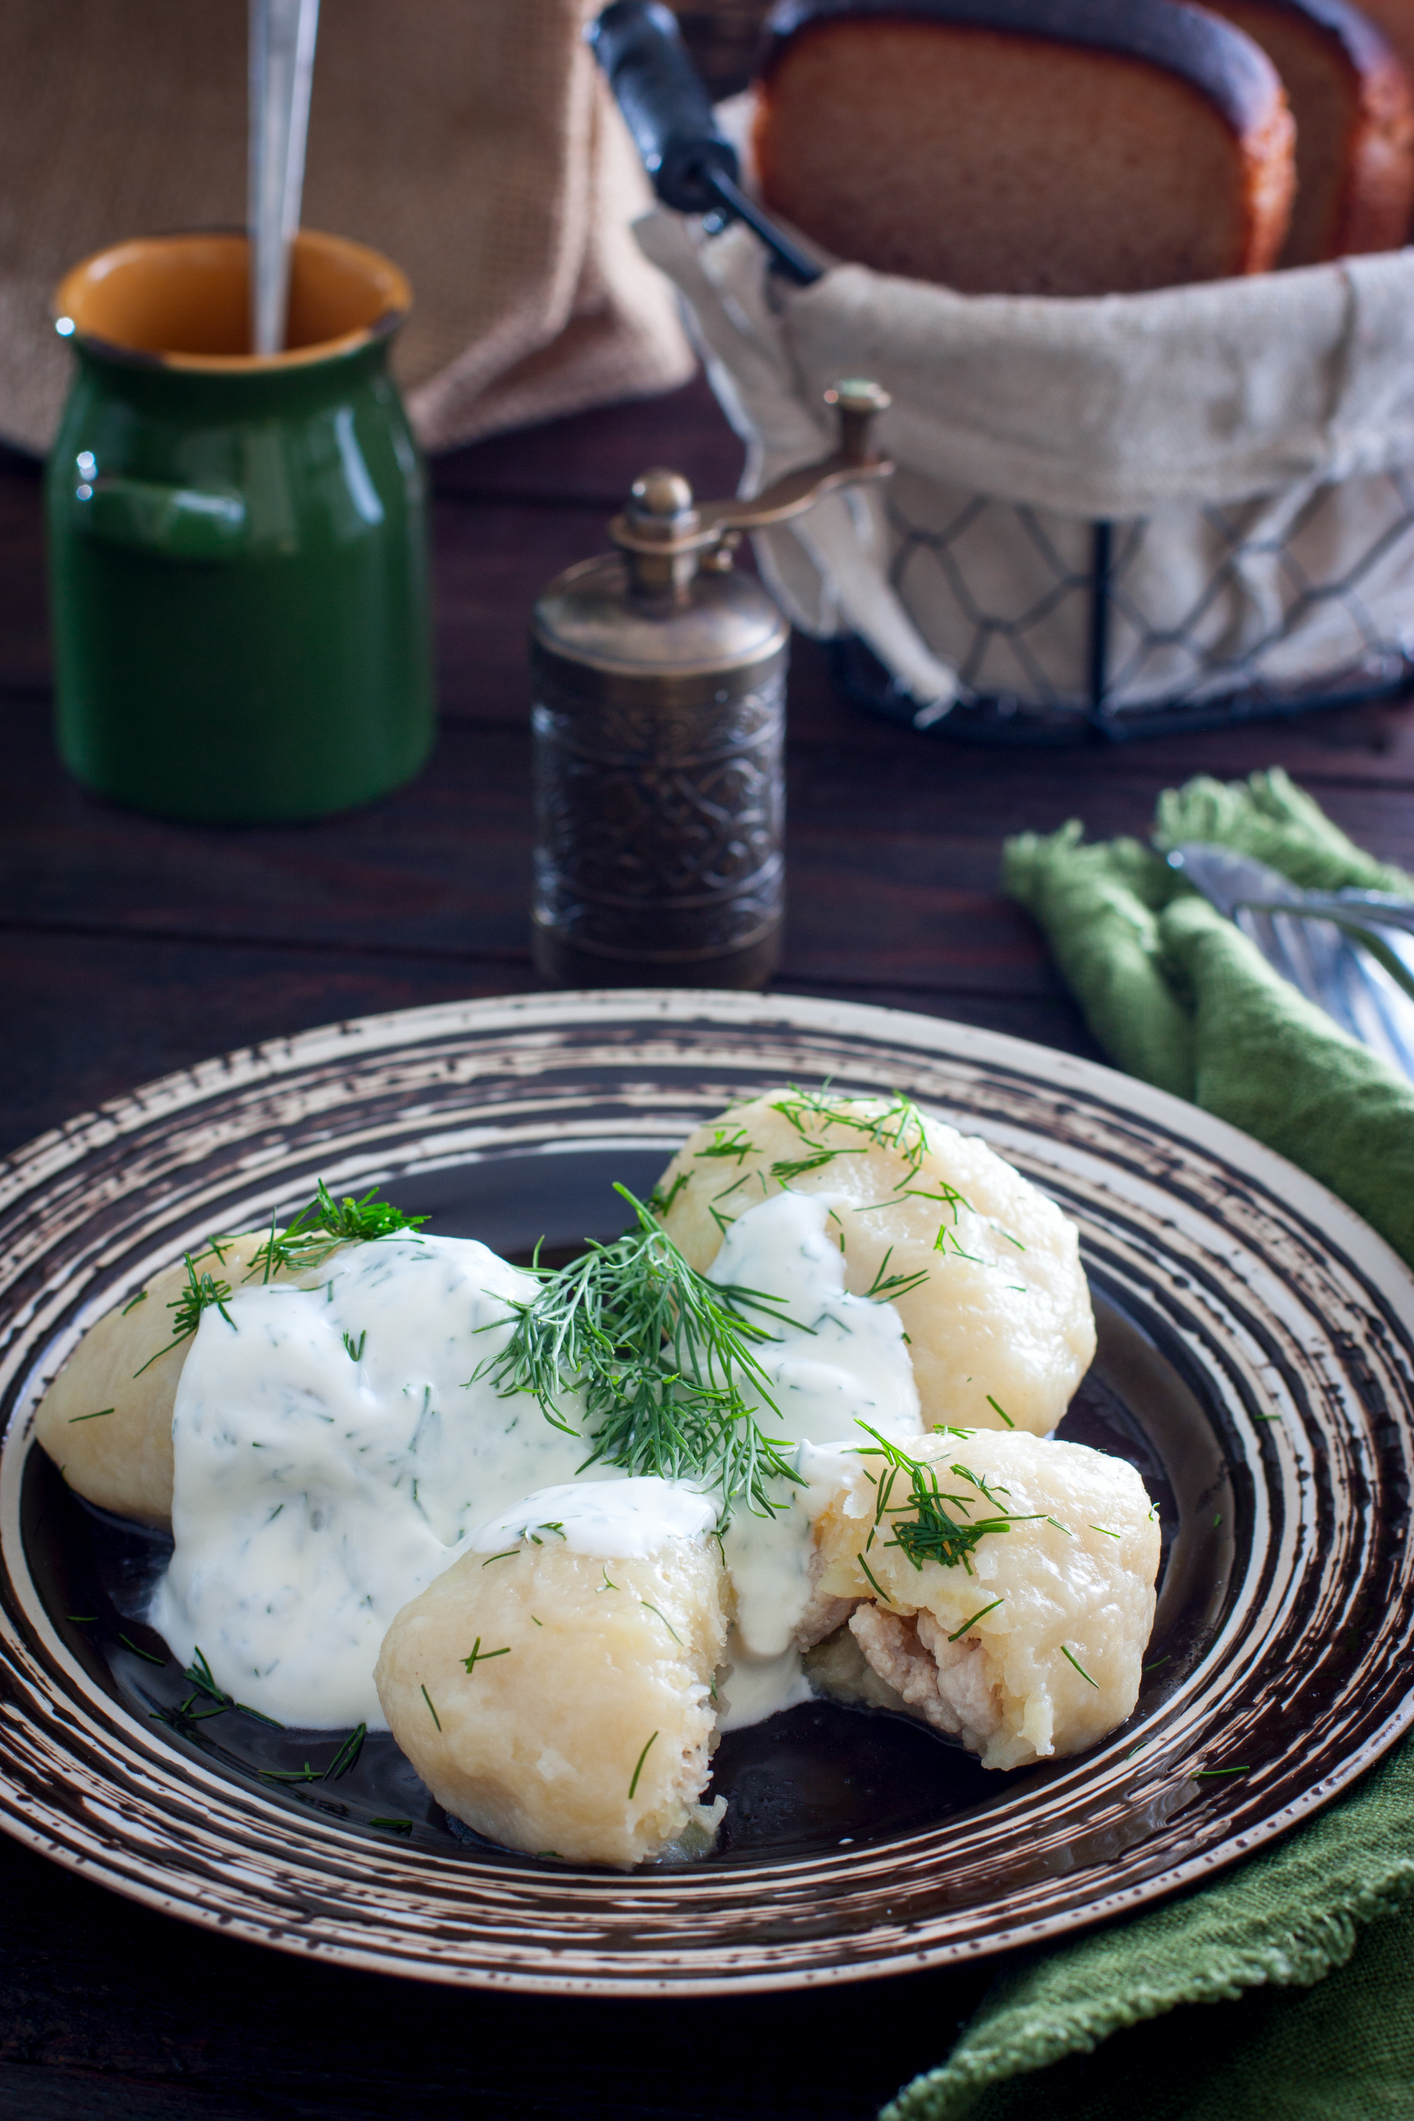 Traditional Lithuanian dish meal cuisine - stuffed meat potato dumpling (Cepelinai,didzkukuliai),most popular Lithuanian national dish, curd, similar to polish